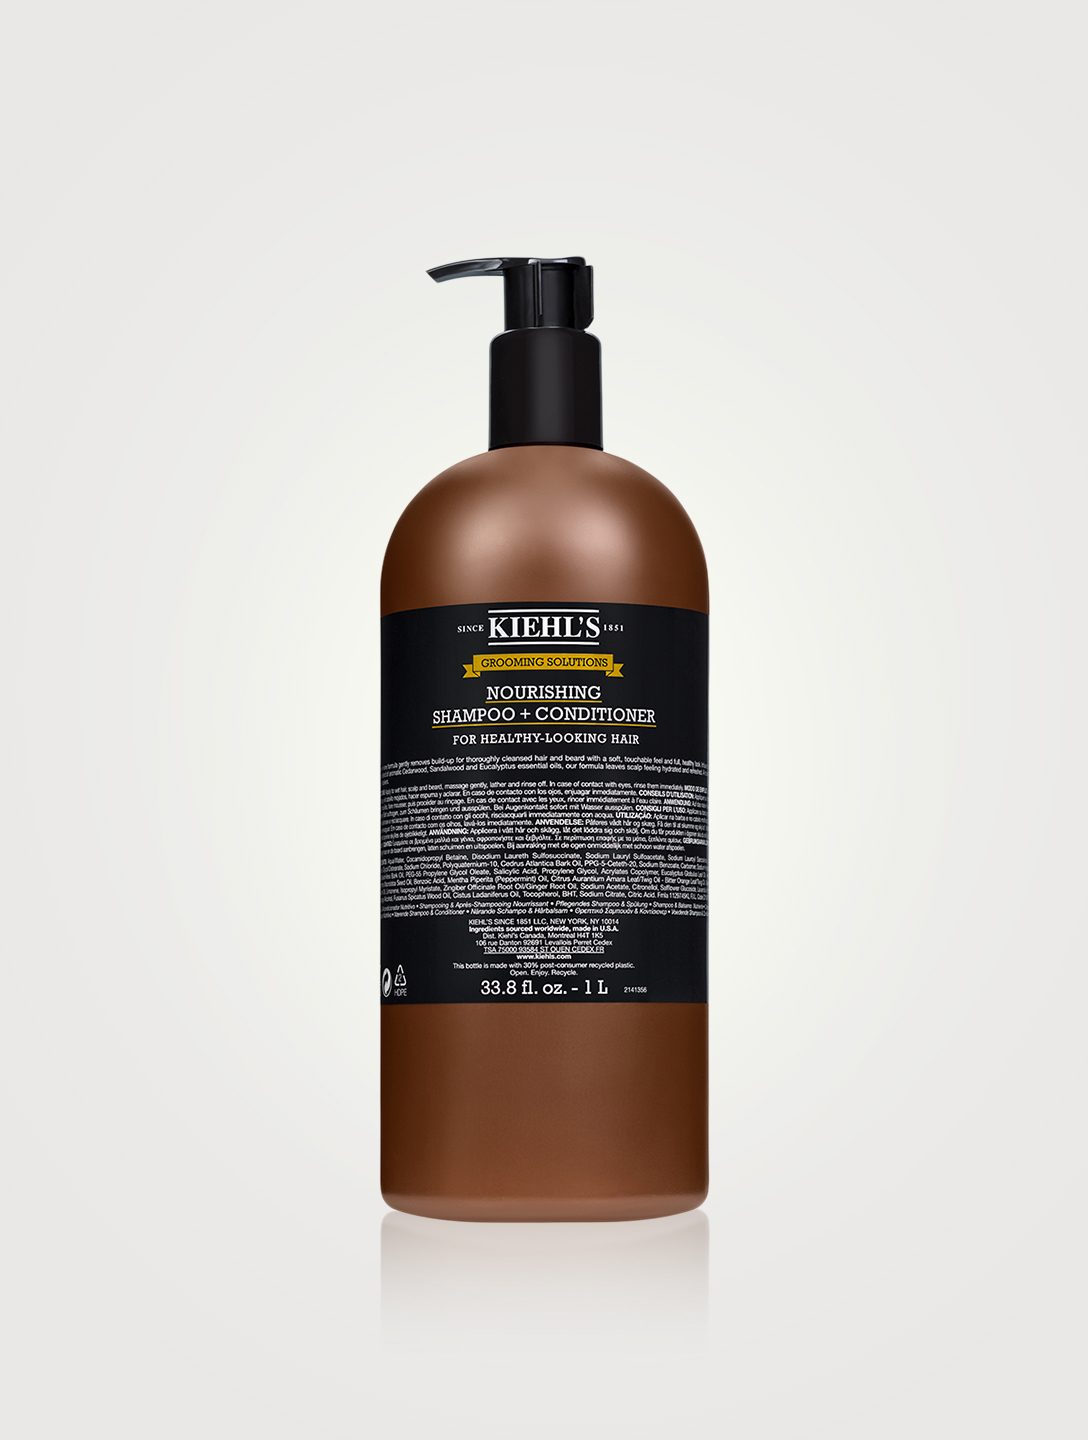 KIEHL'S Grooming Solutions Nourishing Shampoo + Conditioner Beauty